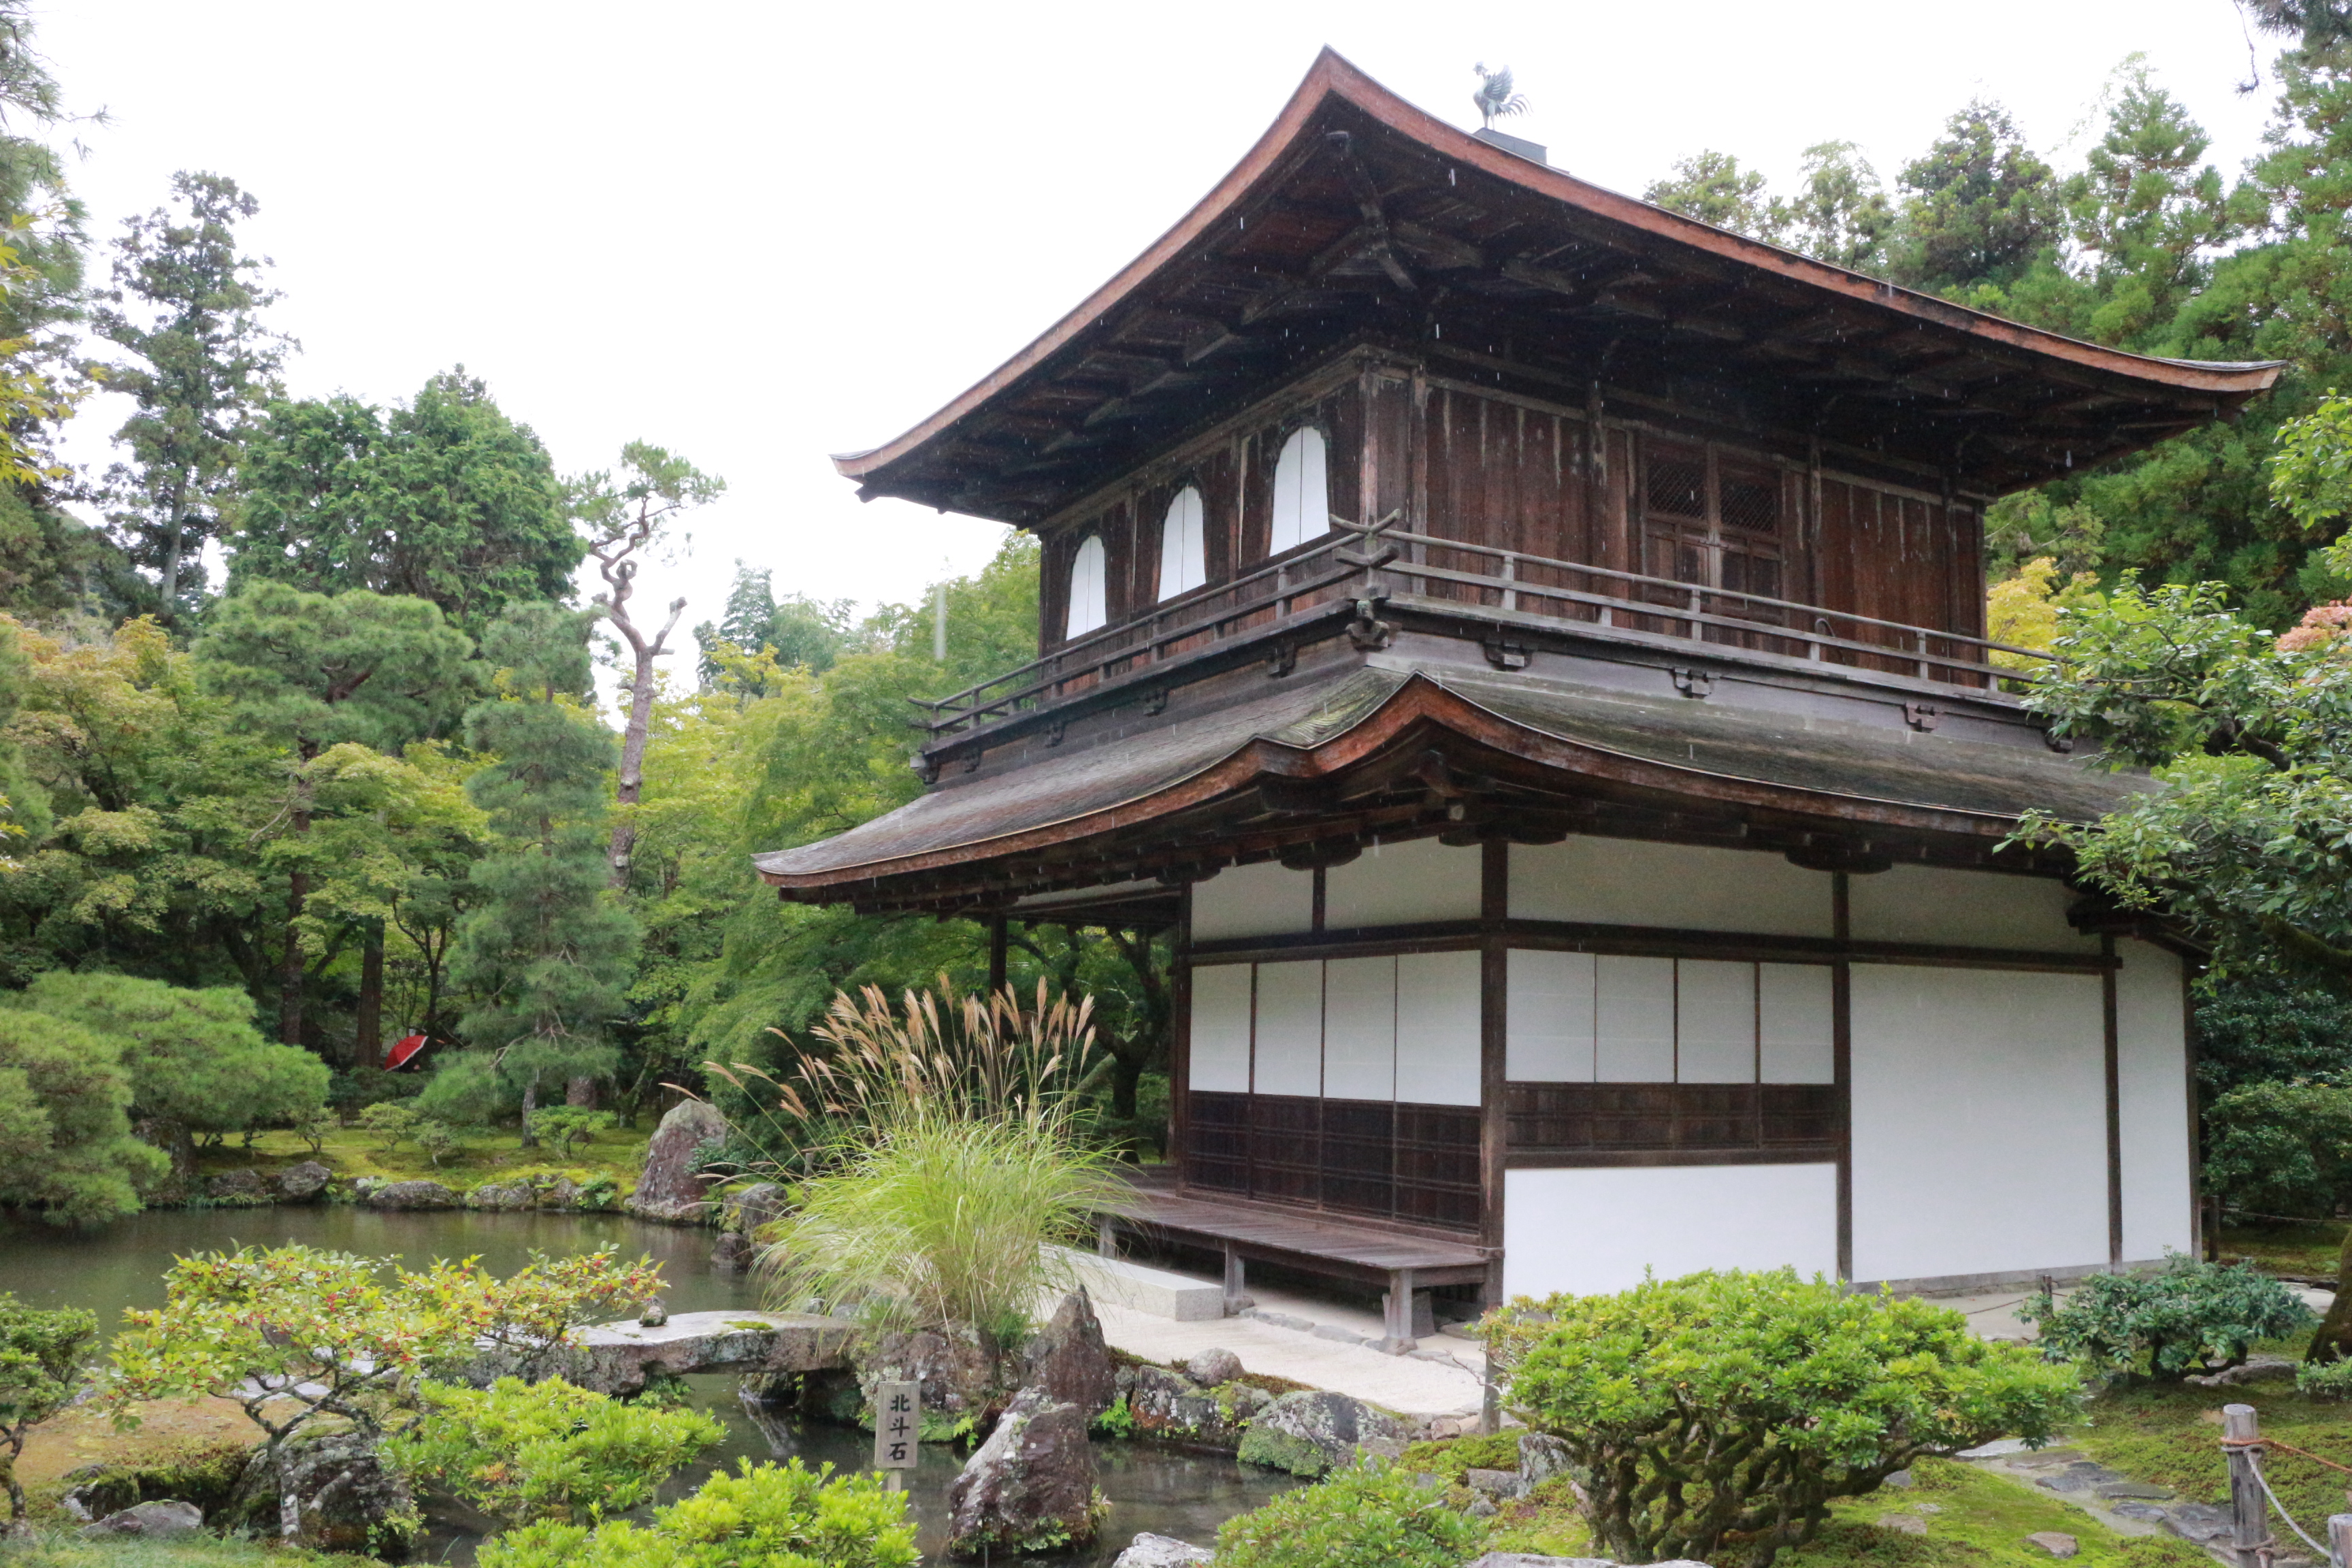 How to enjoy Ginkakuji-temple (Silver Pavilion)??